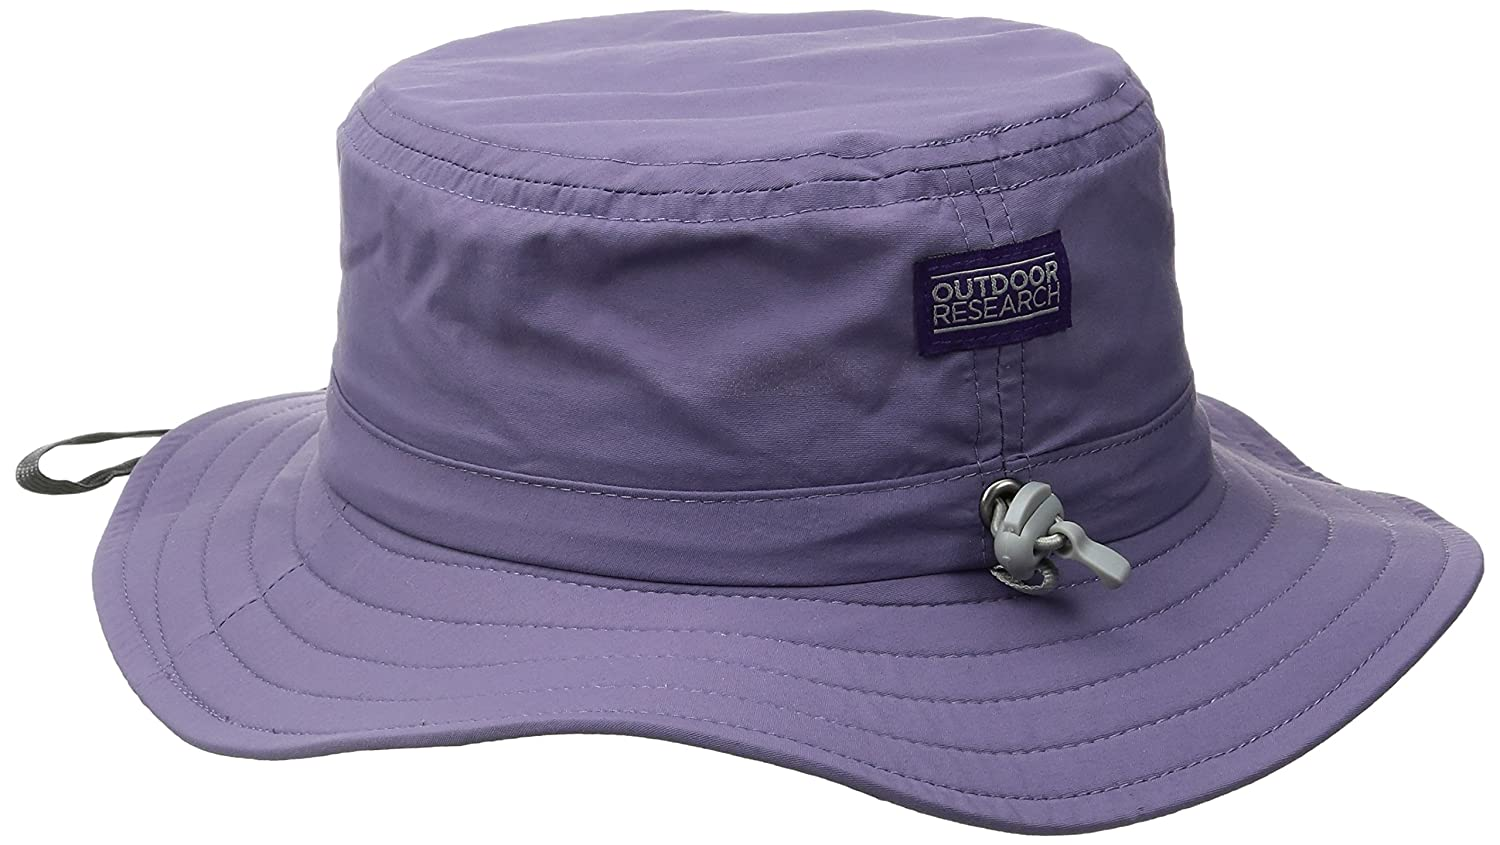 detailing 4effa 54d19 Amazon.com  Outdoor Research Kids Helios Sun Hat Bug Protection  Clothing